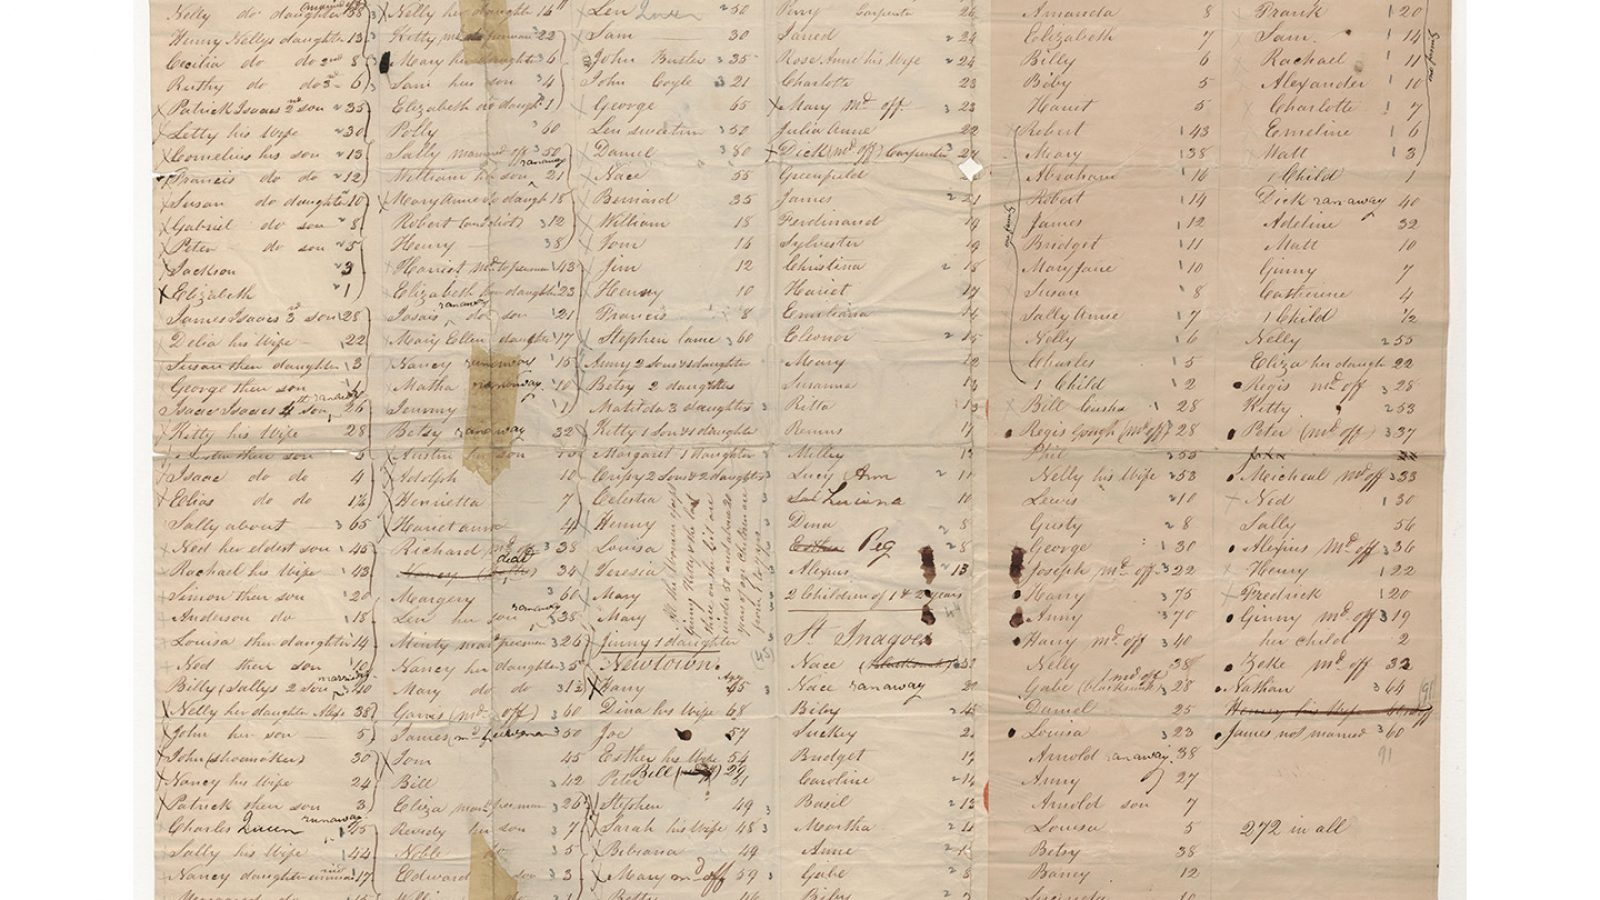 Census document of enslaved people compiled in preparation for sale to Louisiana in 1838 (Georgetown University Library)